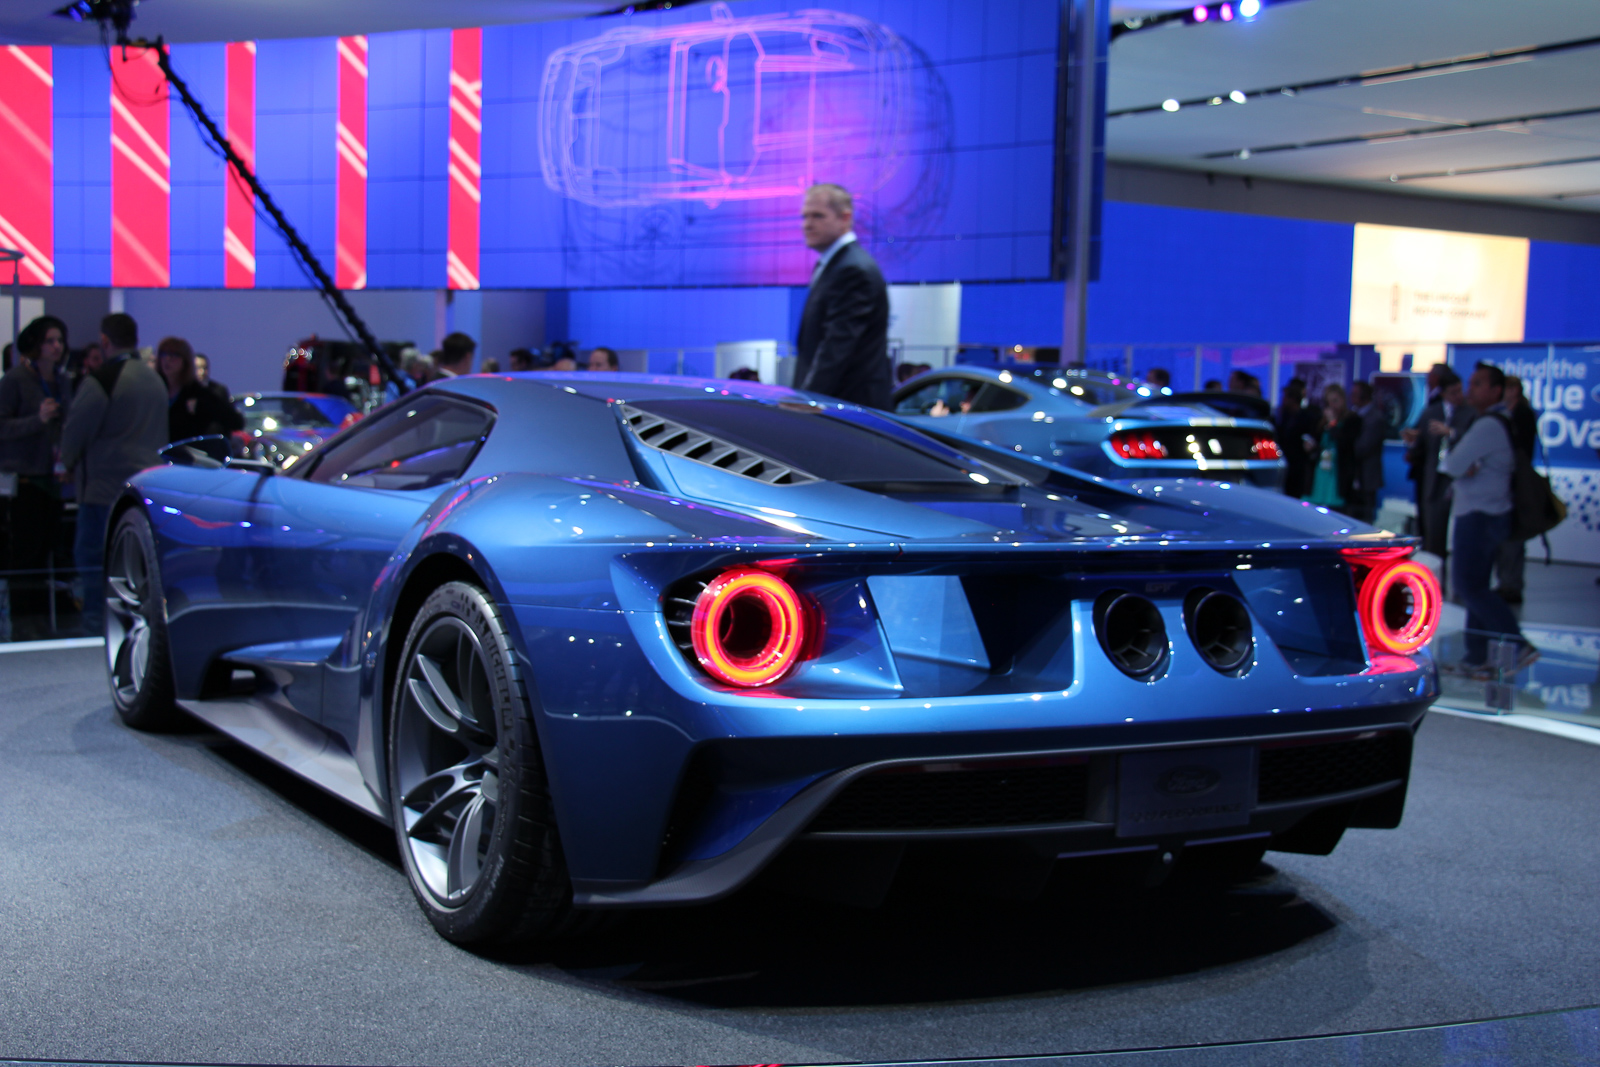 Ford-GT-2016-Concept-NAIAS-2015-Highlights-12